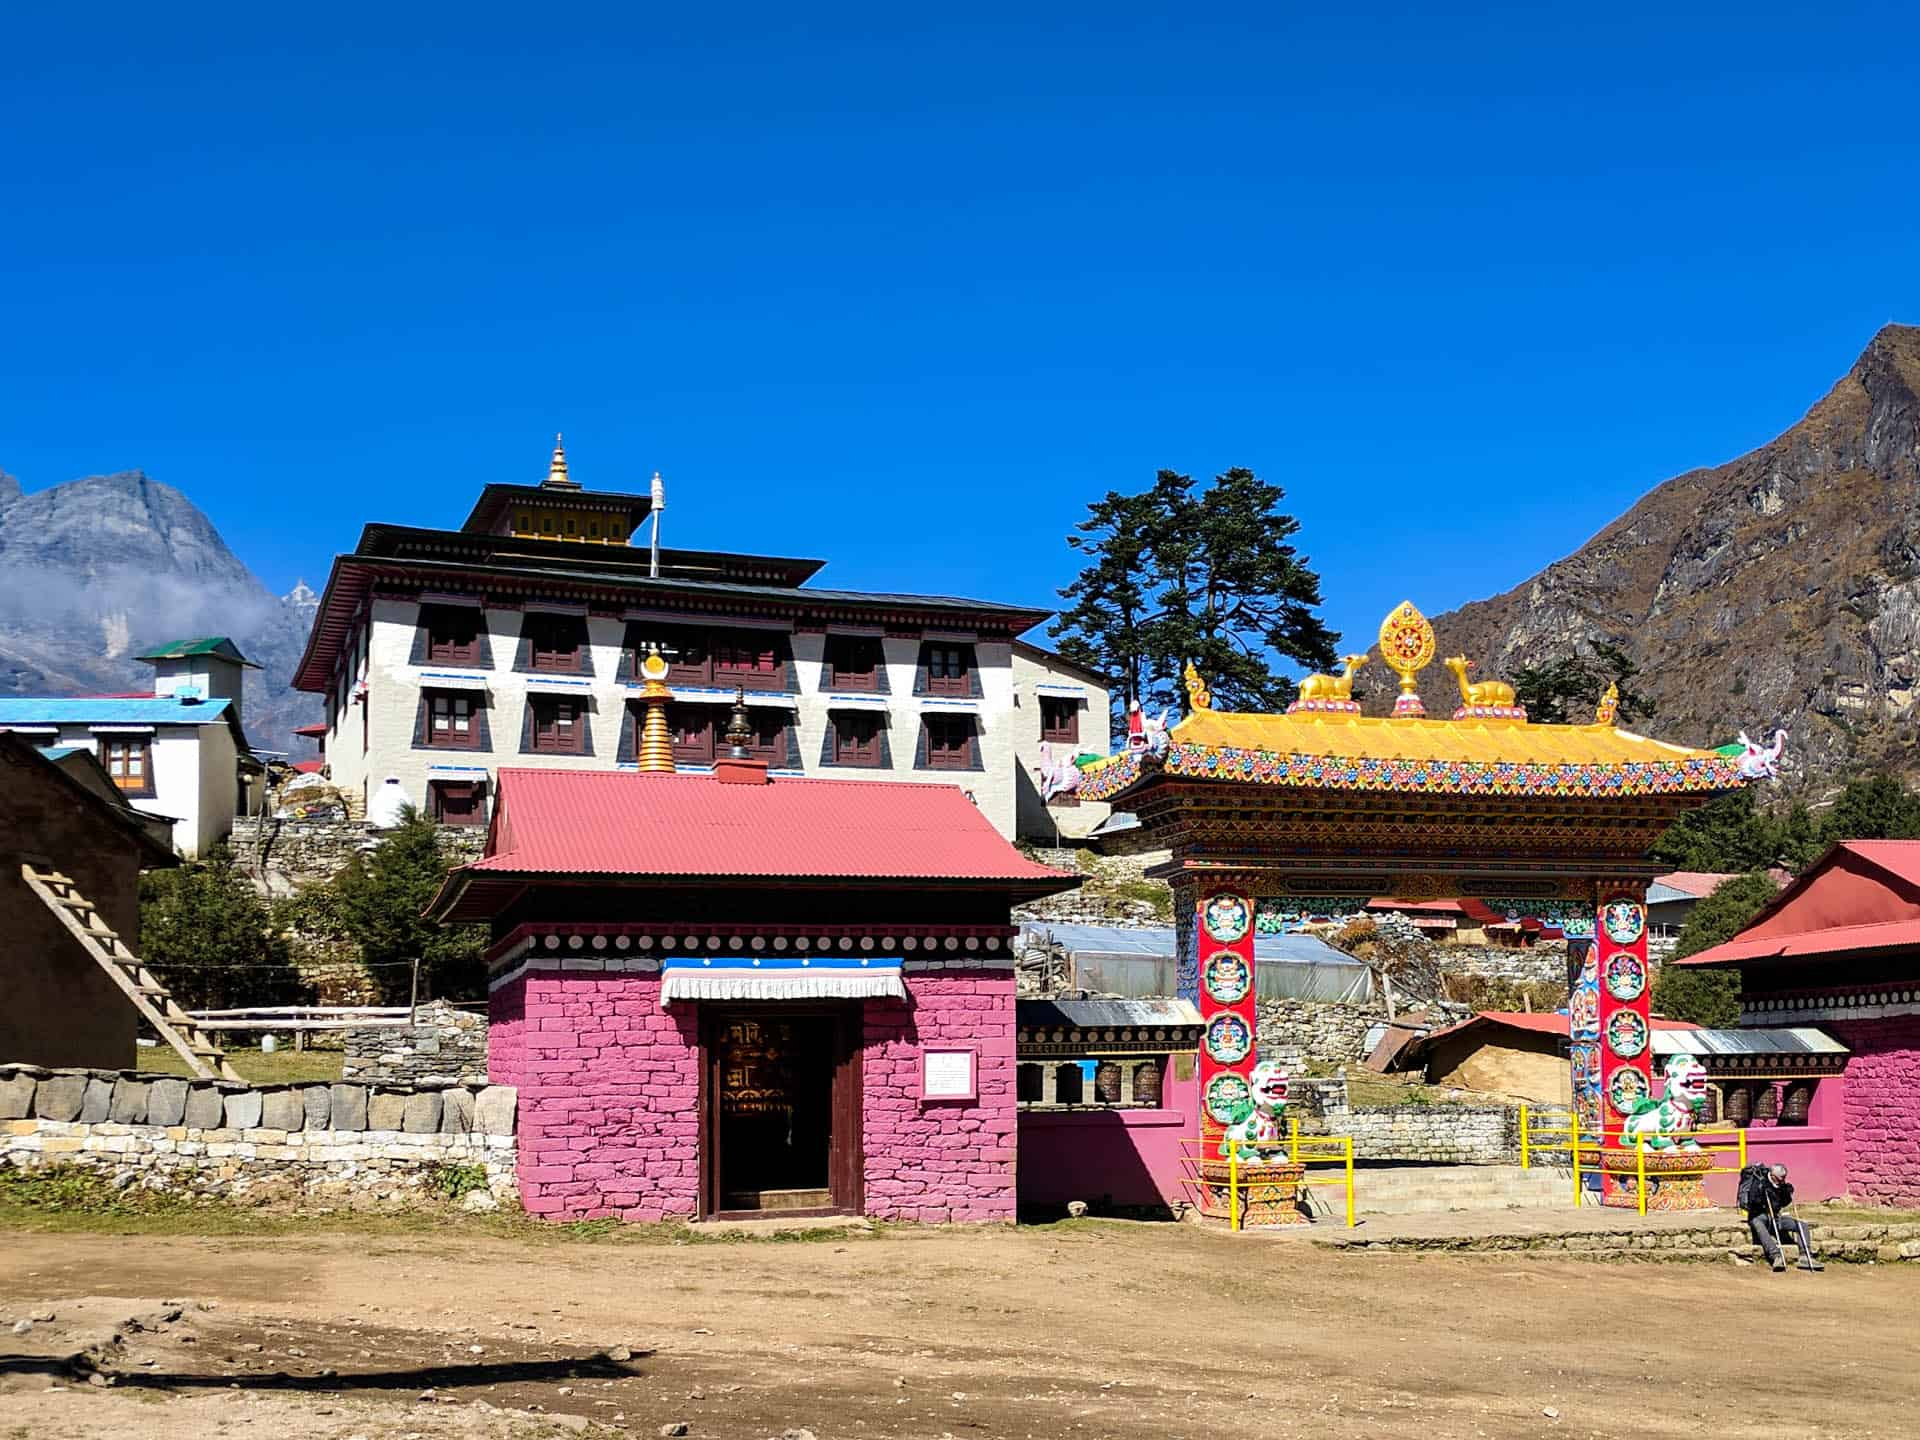 The front of Tengboche Monastery